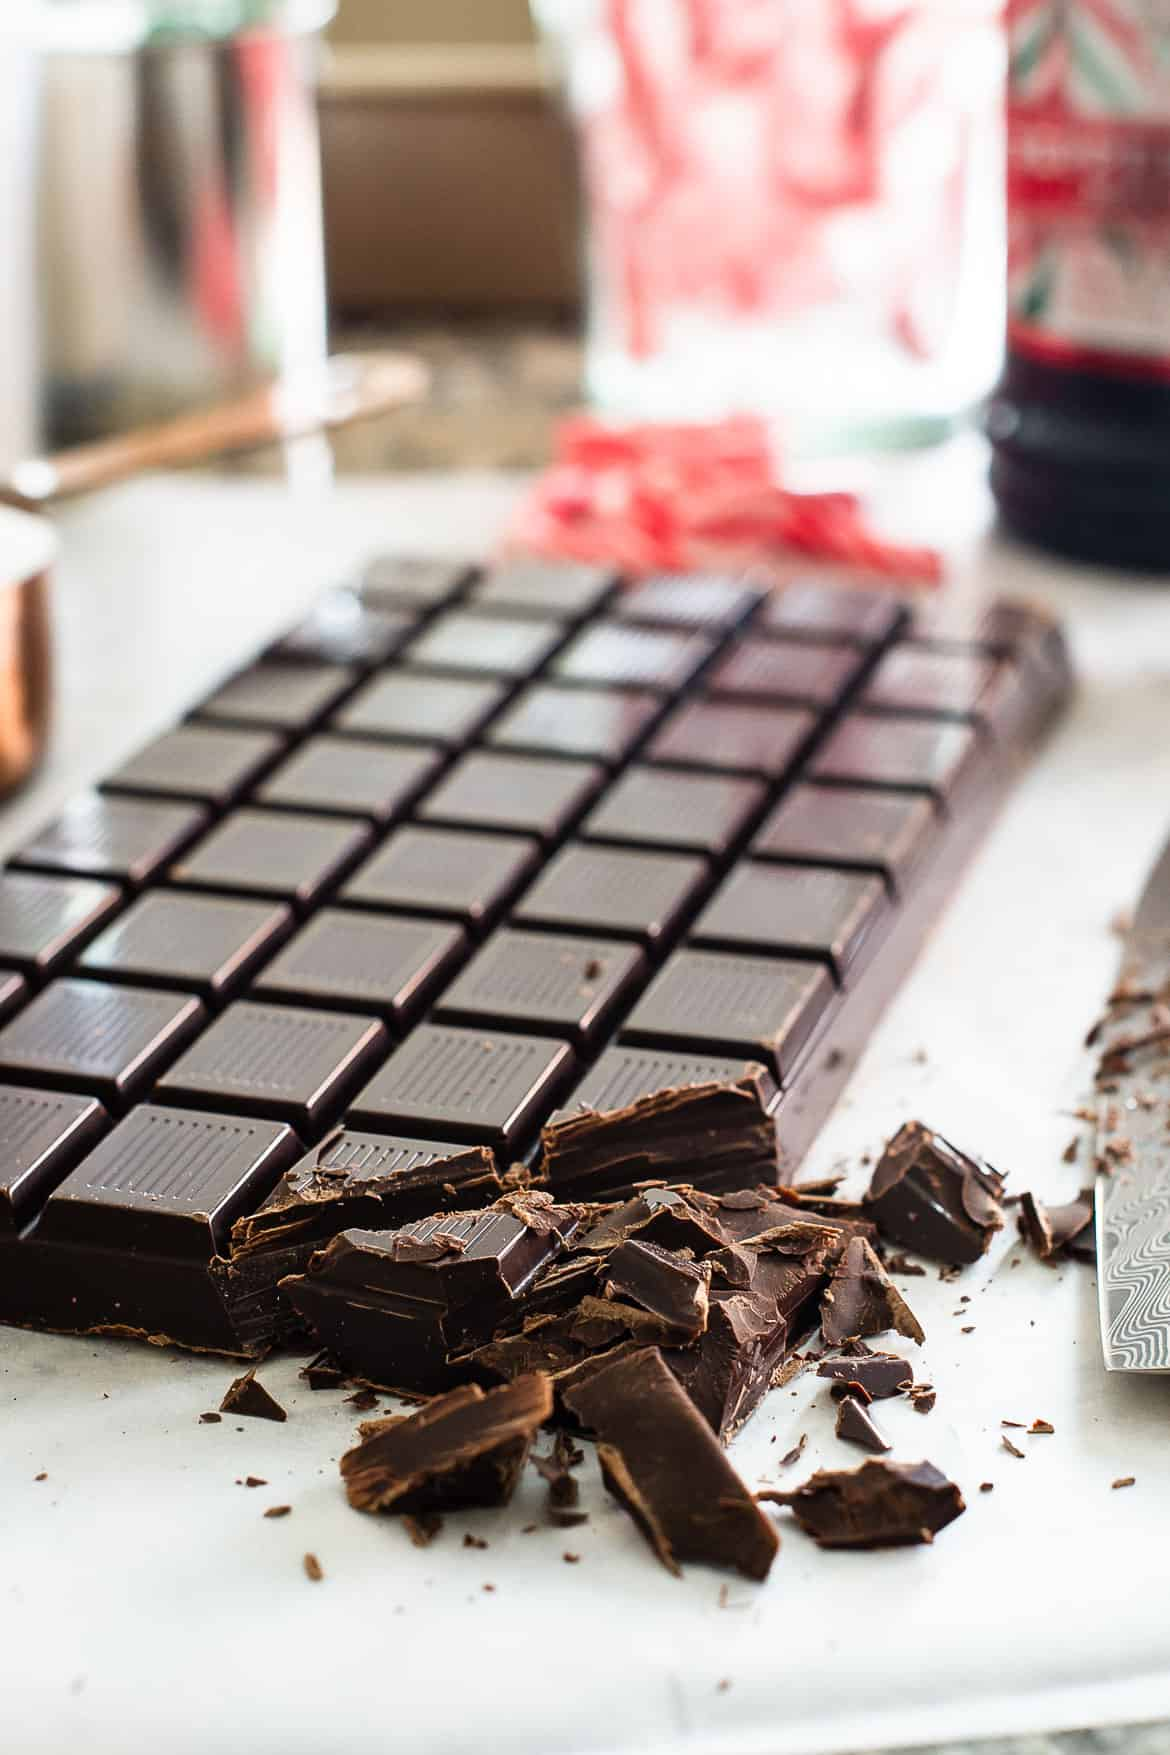 A large bar of chocolate with the corner chopped into smaller pieces.